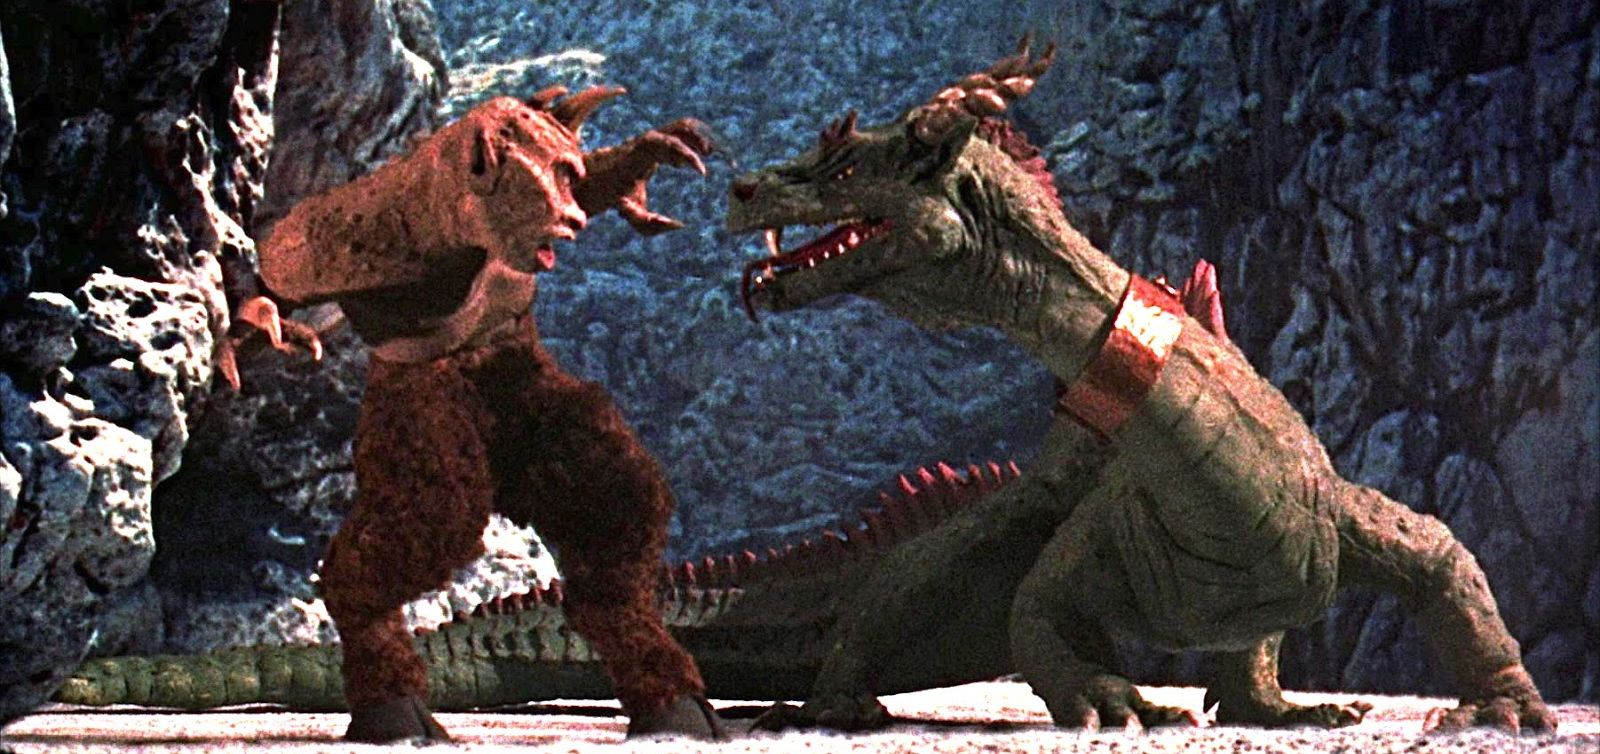 The Fantastic Films of Ray Harryhausen